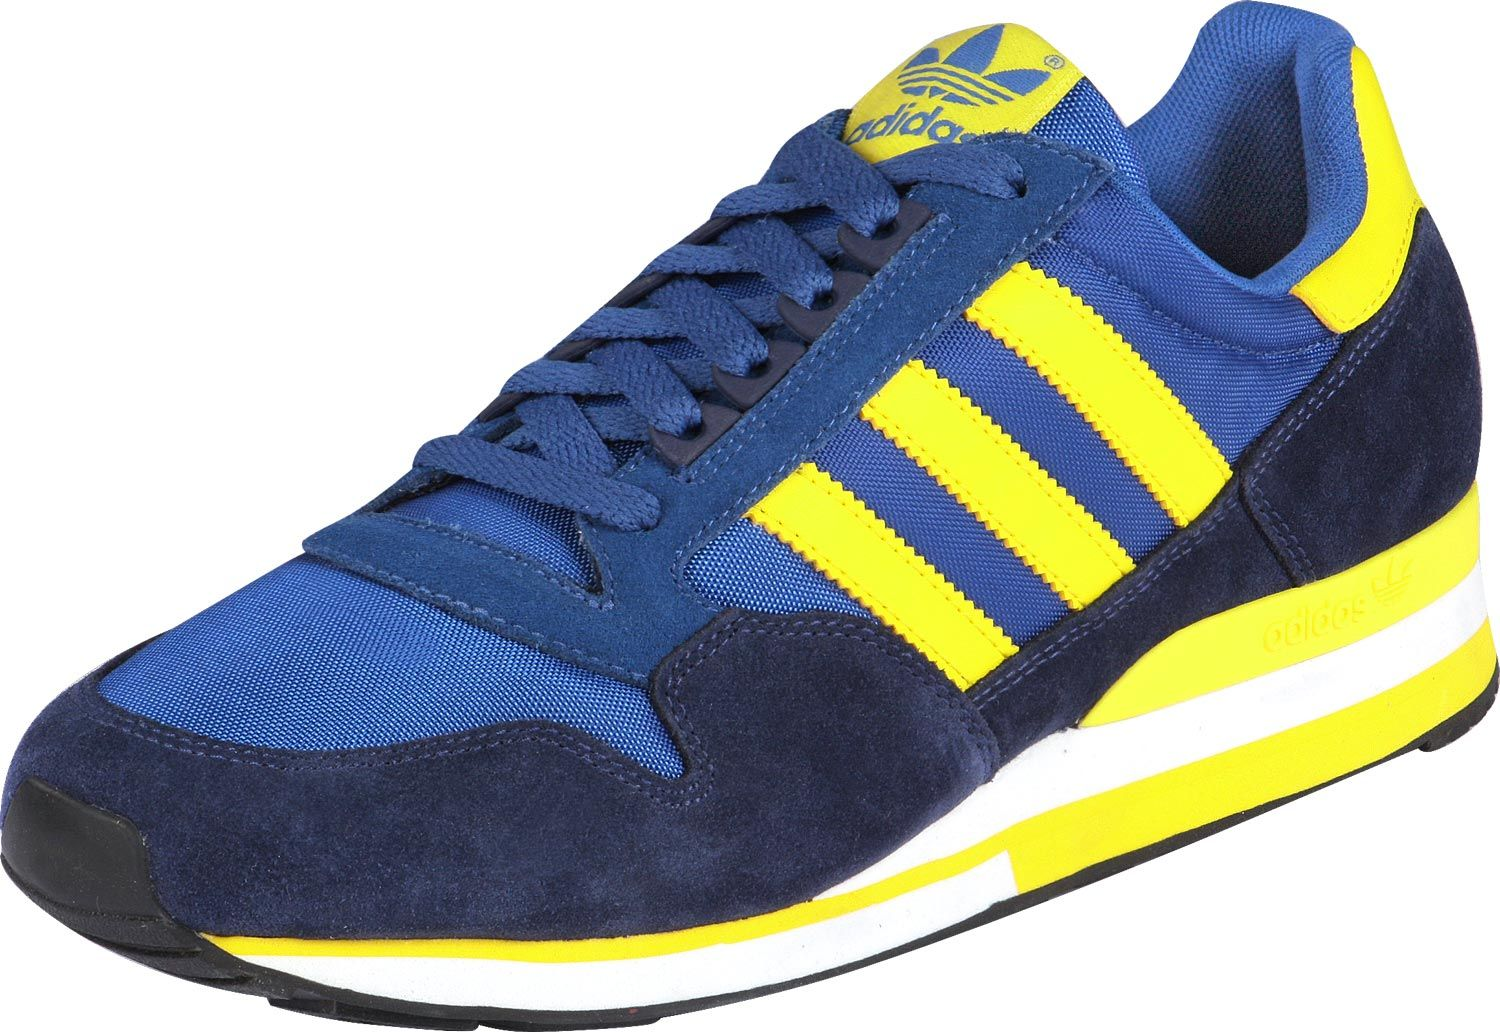 Adidas in Blue/Yellow